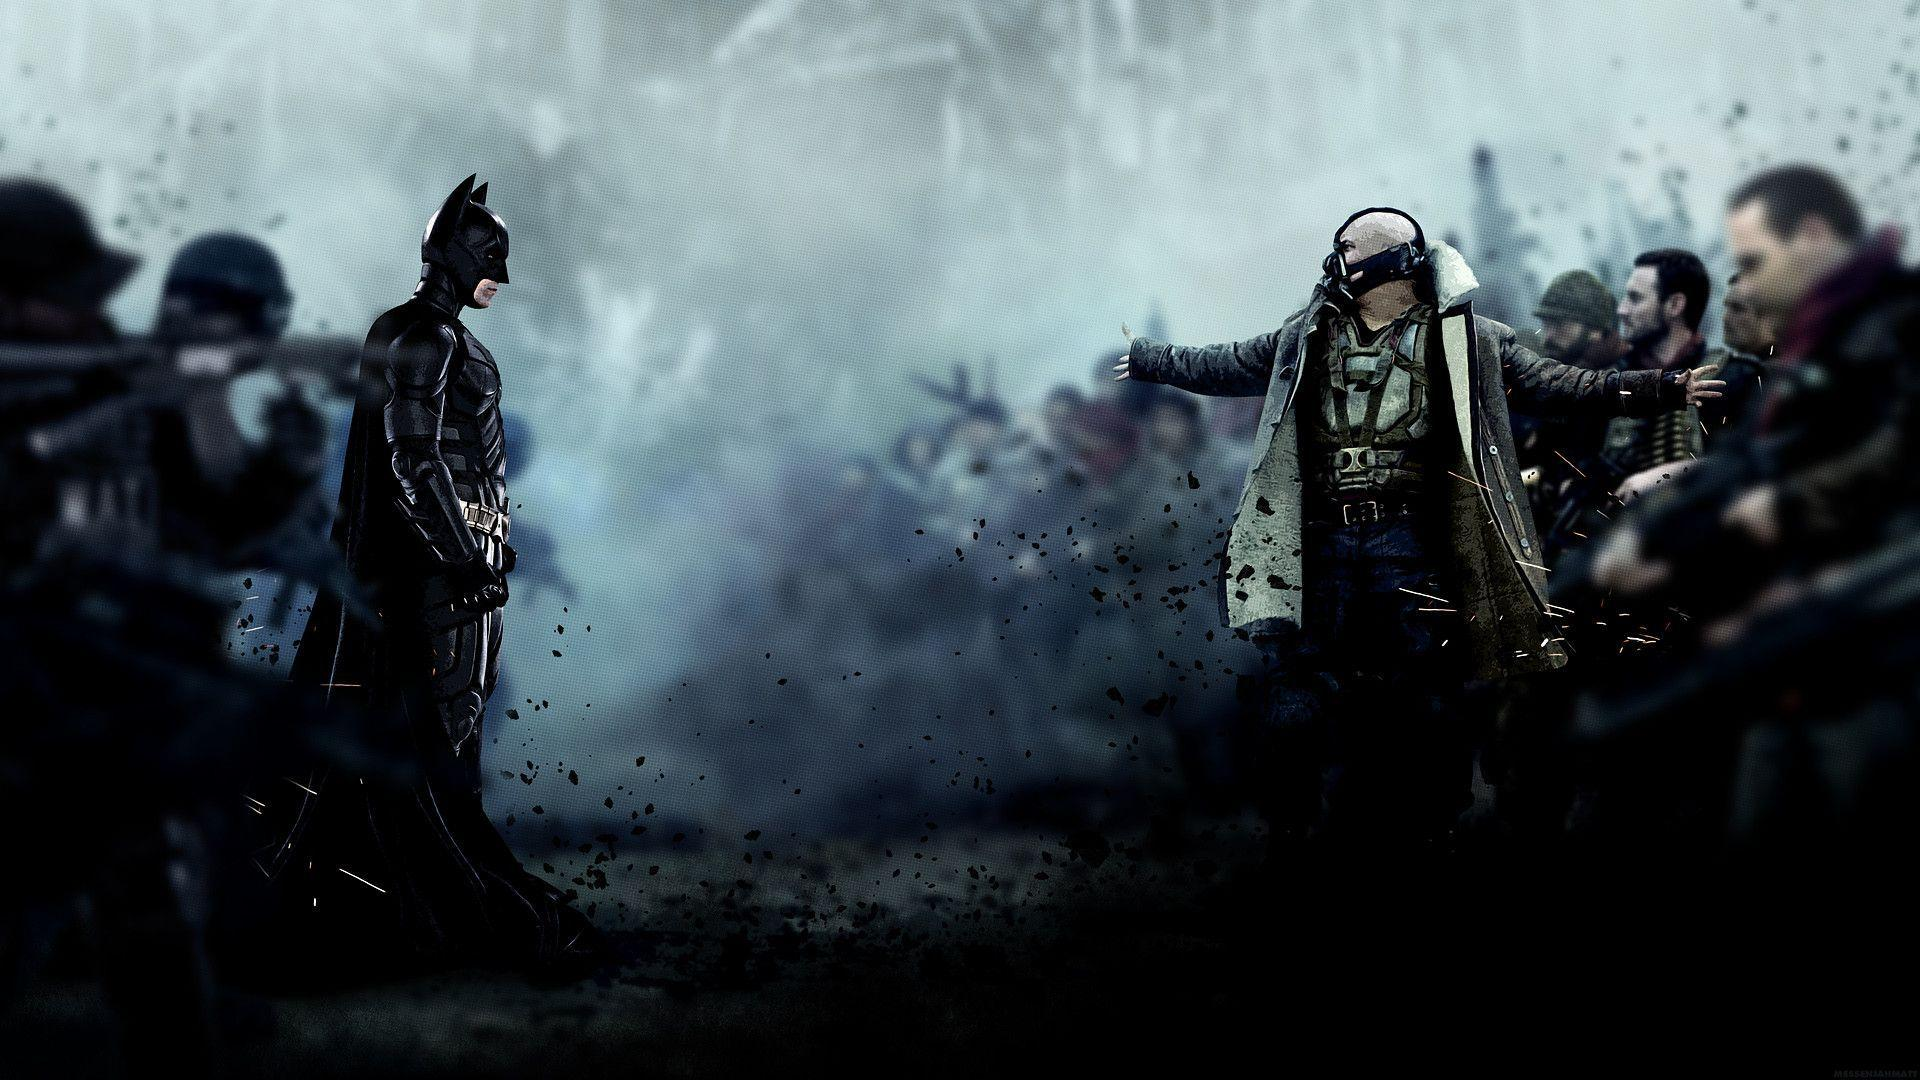 Download Batman The Dark Knight Rises HD Wallpapers 1920x1080